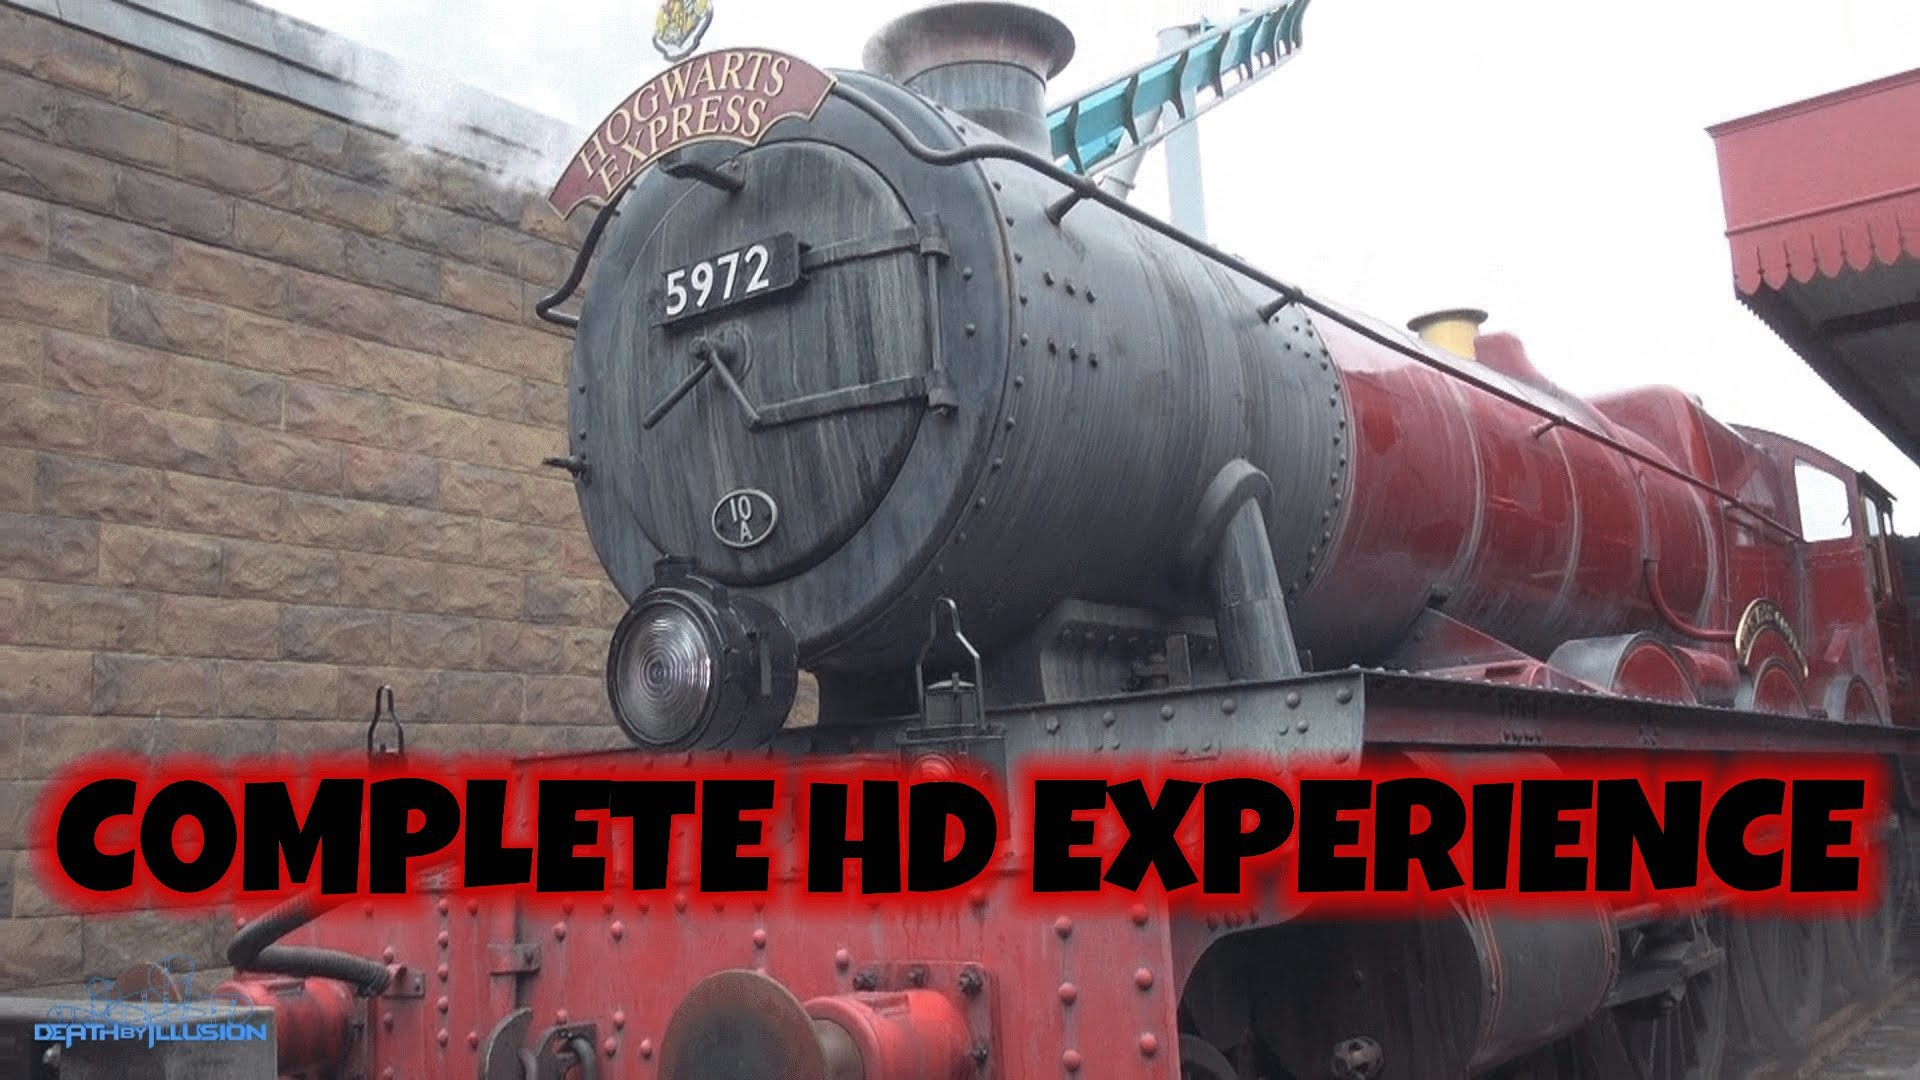 Res: 1920x1080, Hogwarts Express Train - London Kings Cross On-ride (Complete HD  Experience) Universal Orlando WWoHP